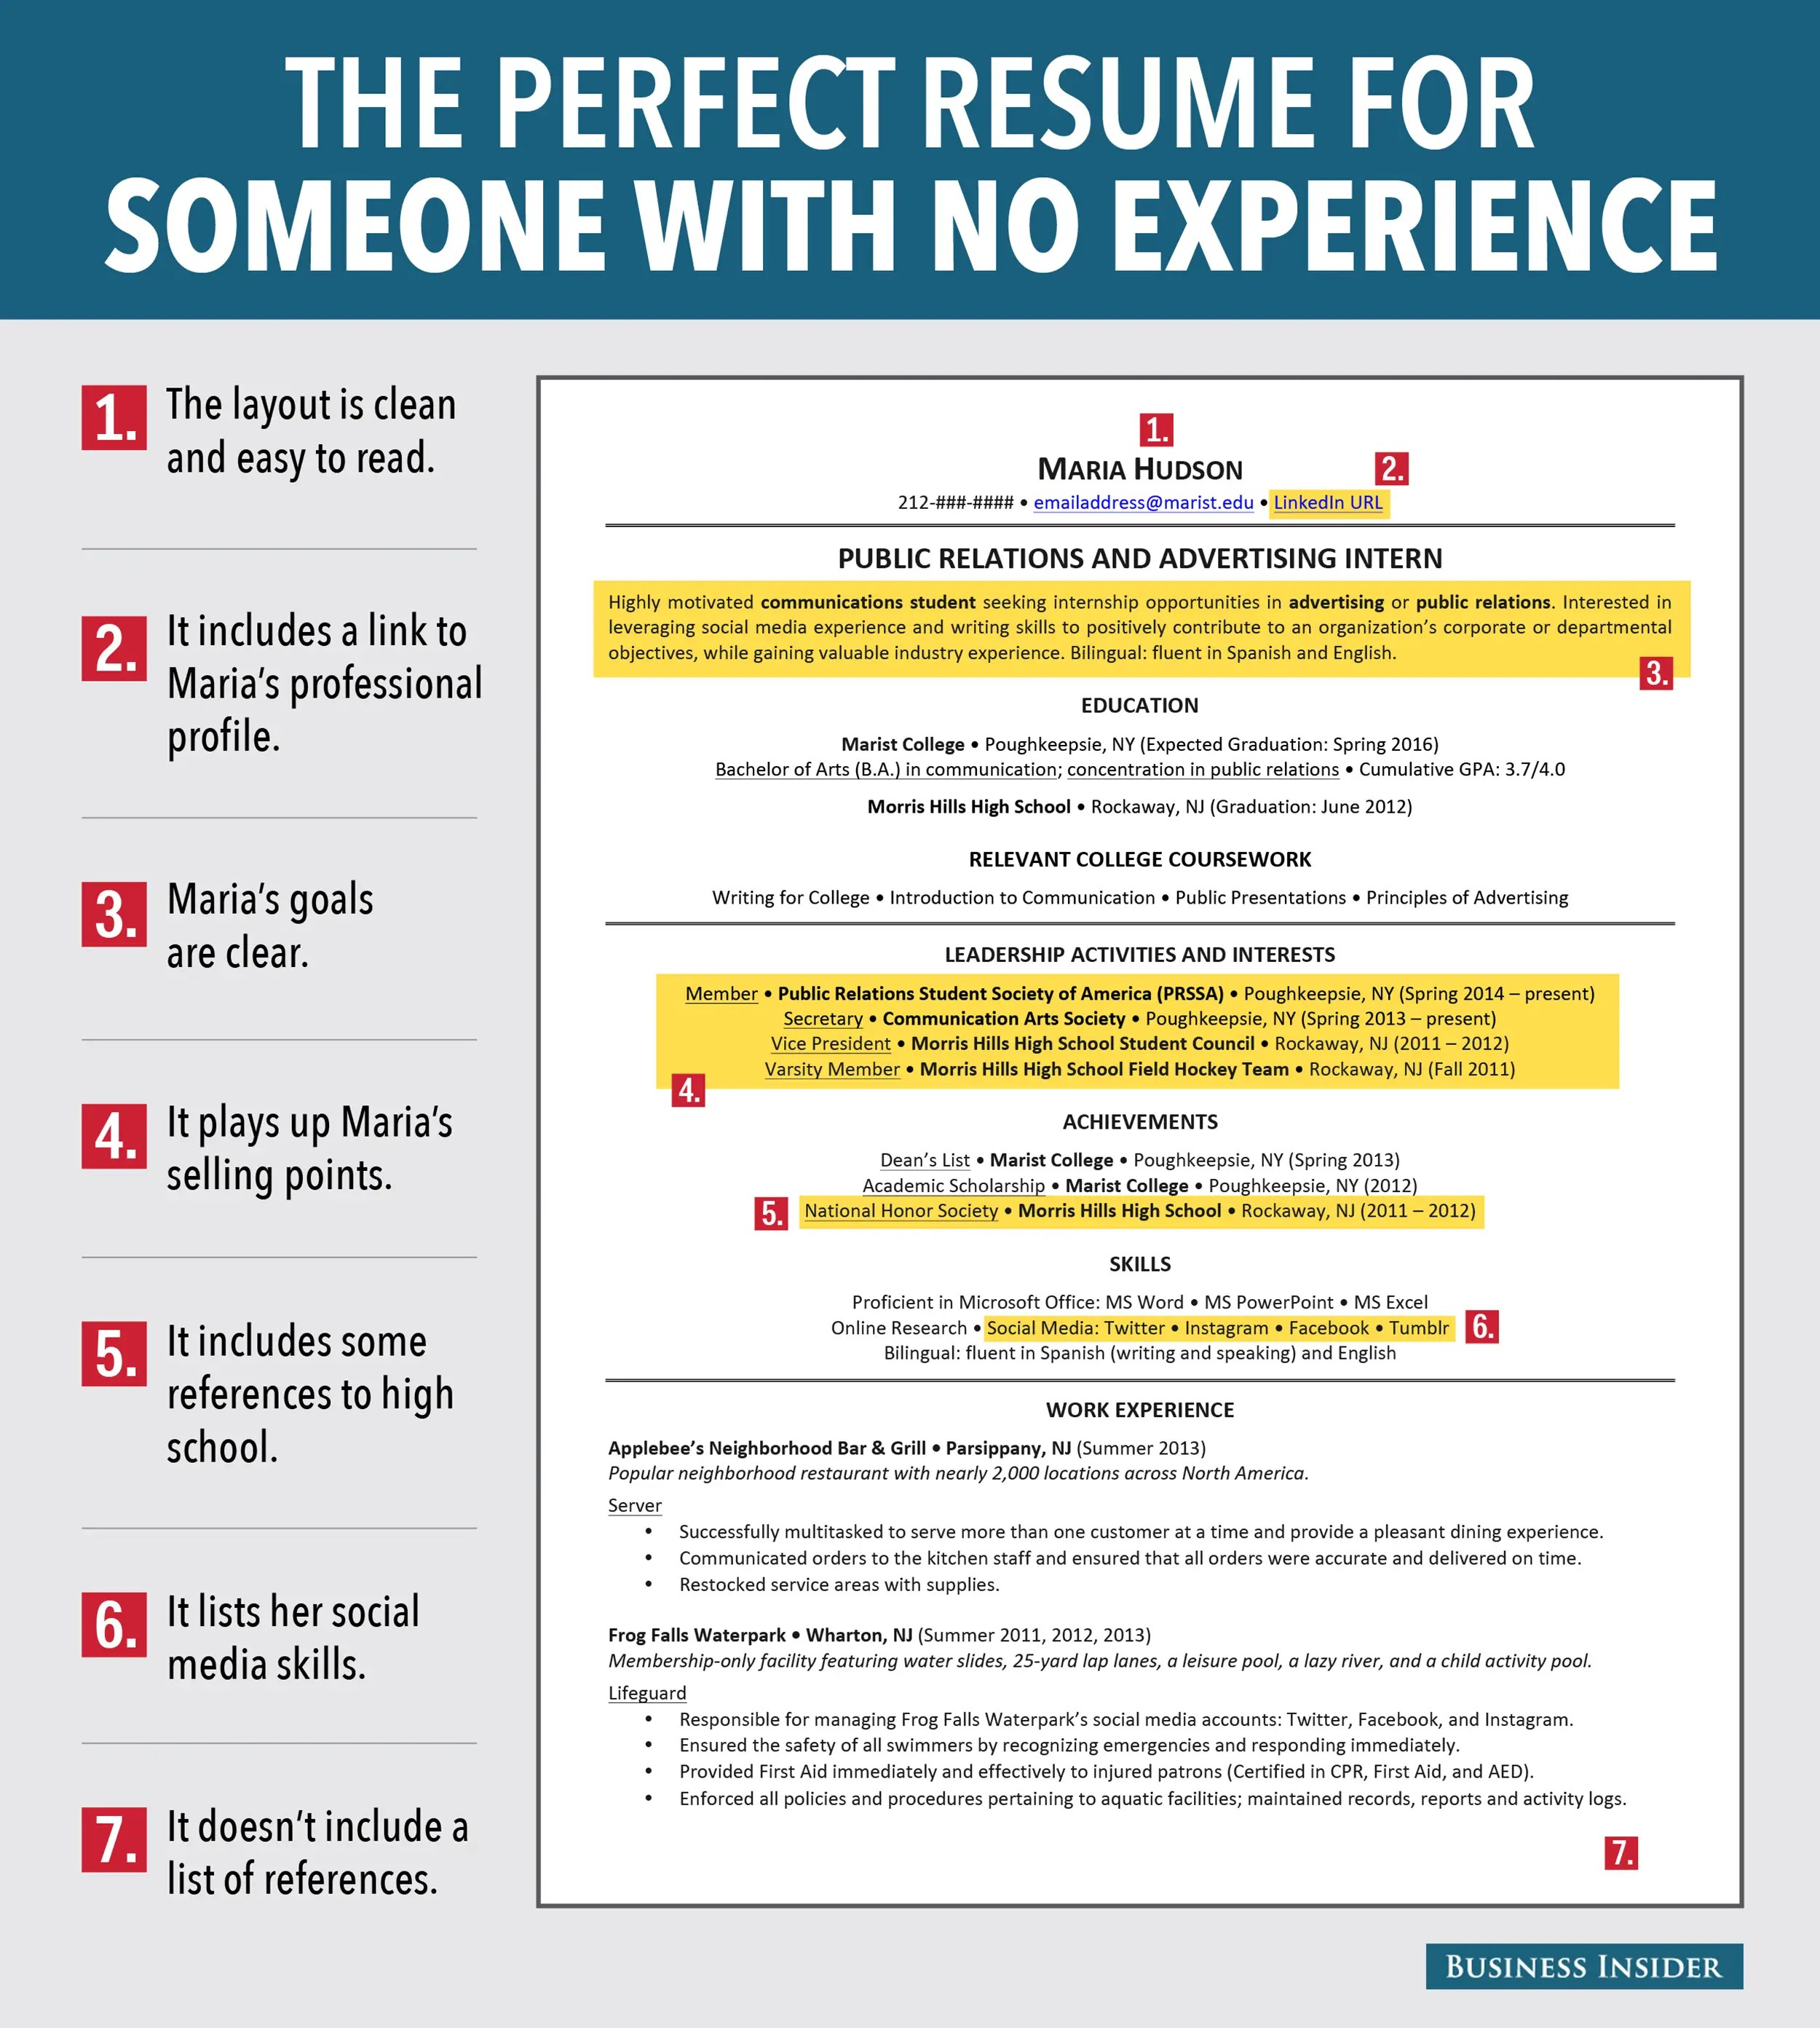 Resume For Job Seeker With No Experience - Business Insider - Resume Examples For Students With No Work Experience